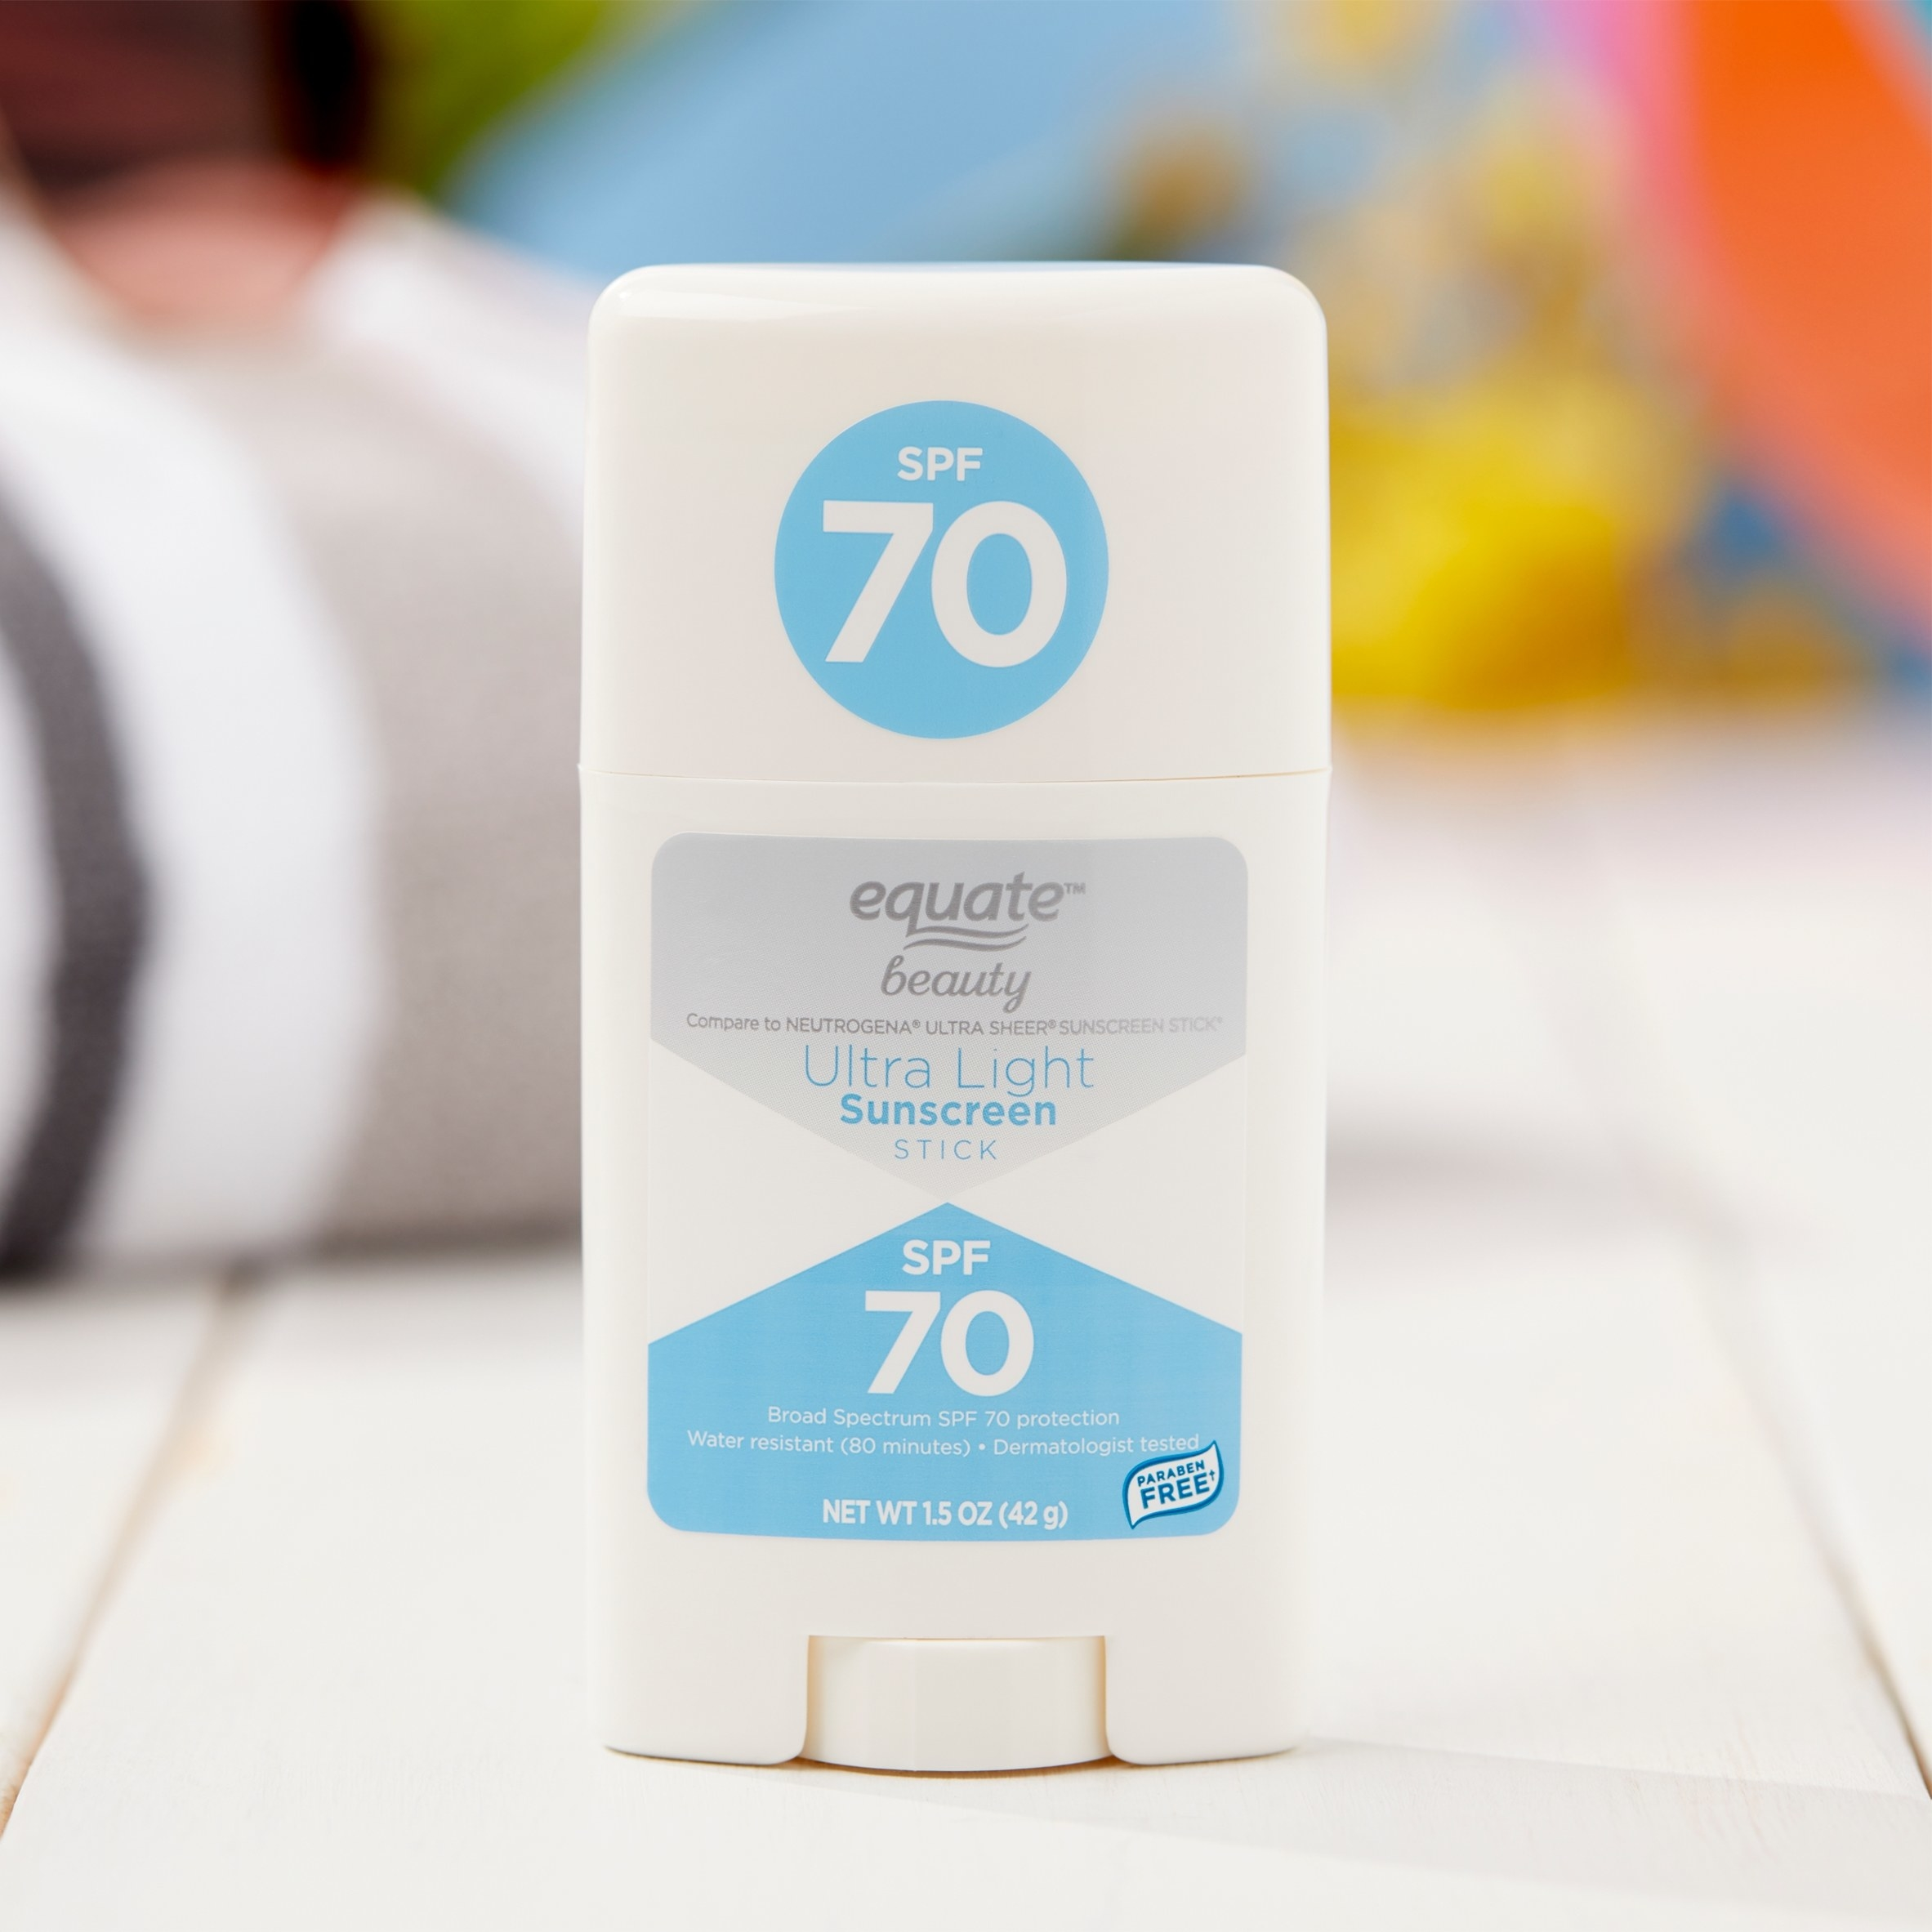 Equate Beauty's Sunscreen stick